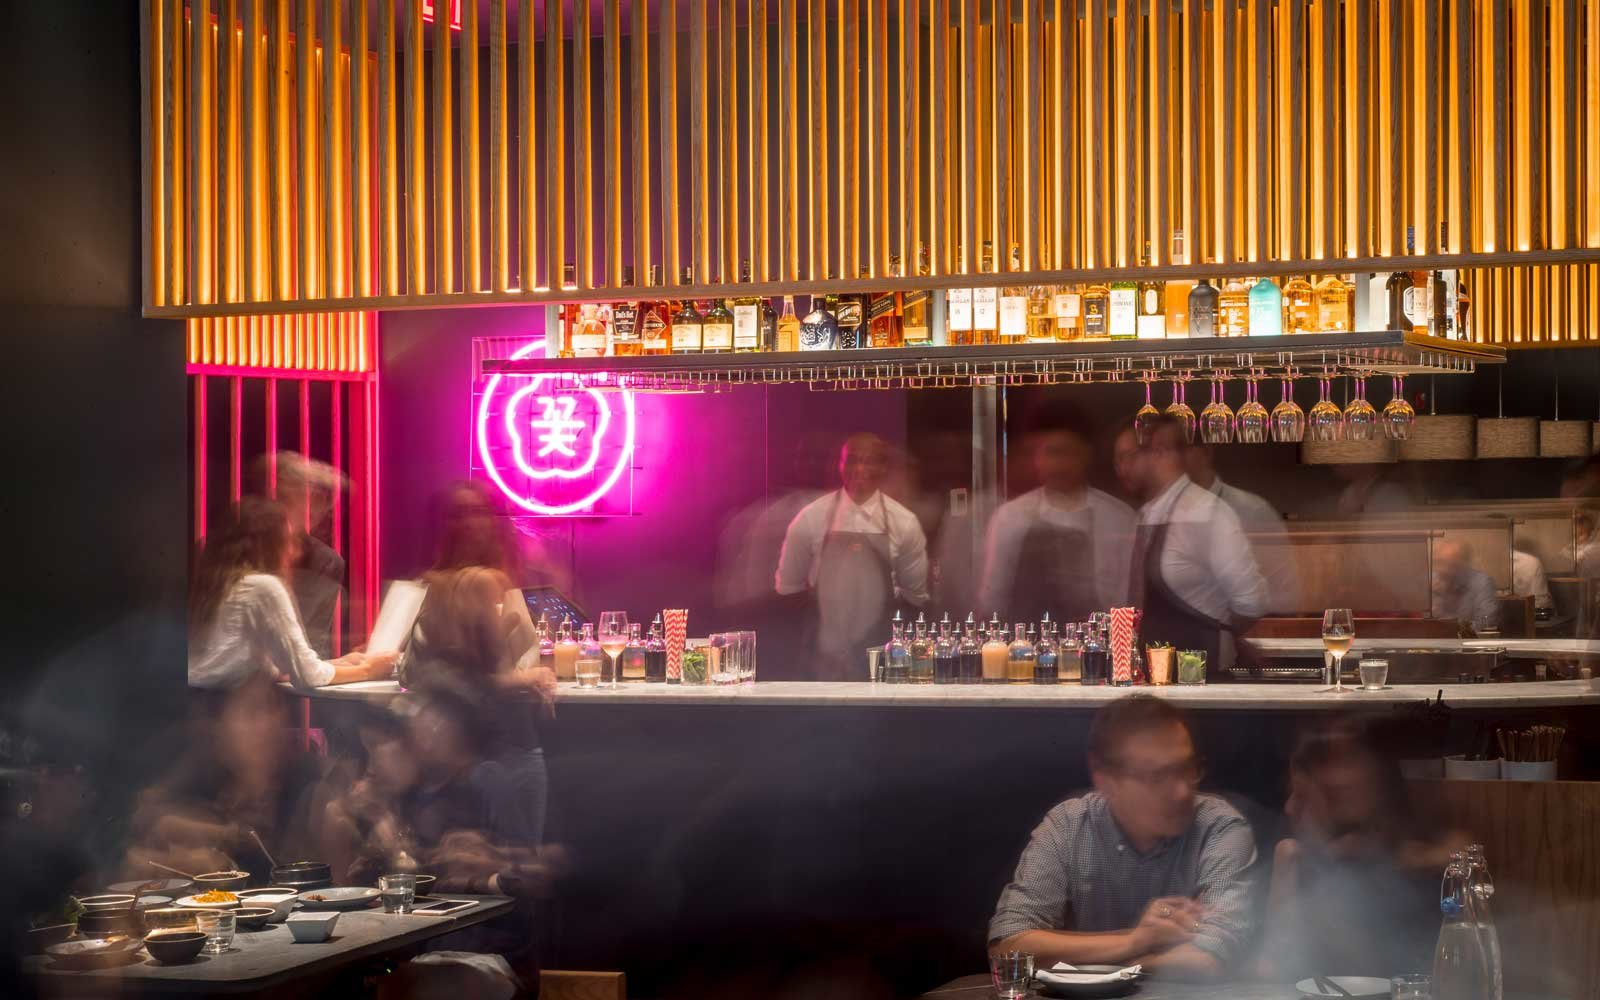 The bar at Cote, in New York.